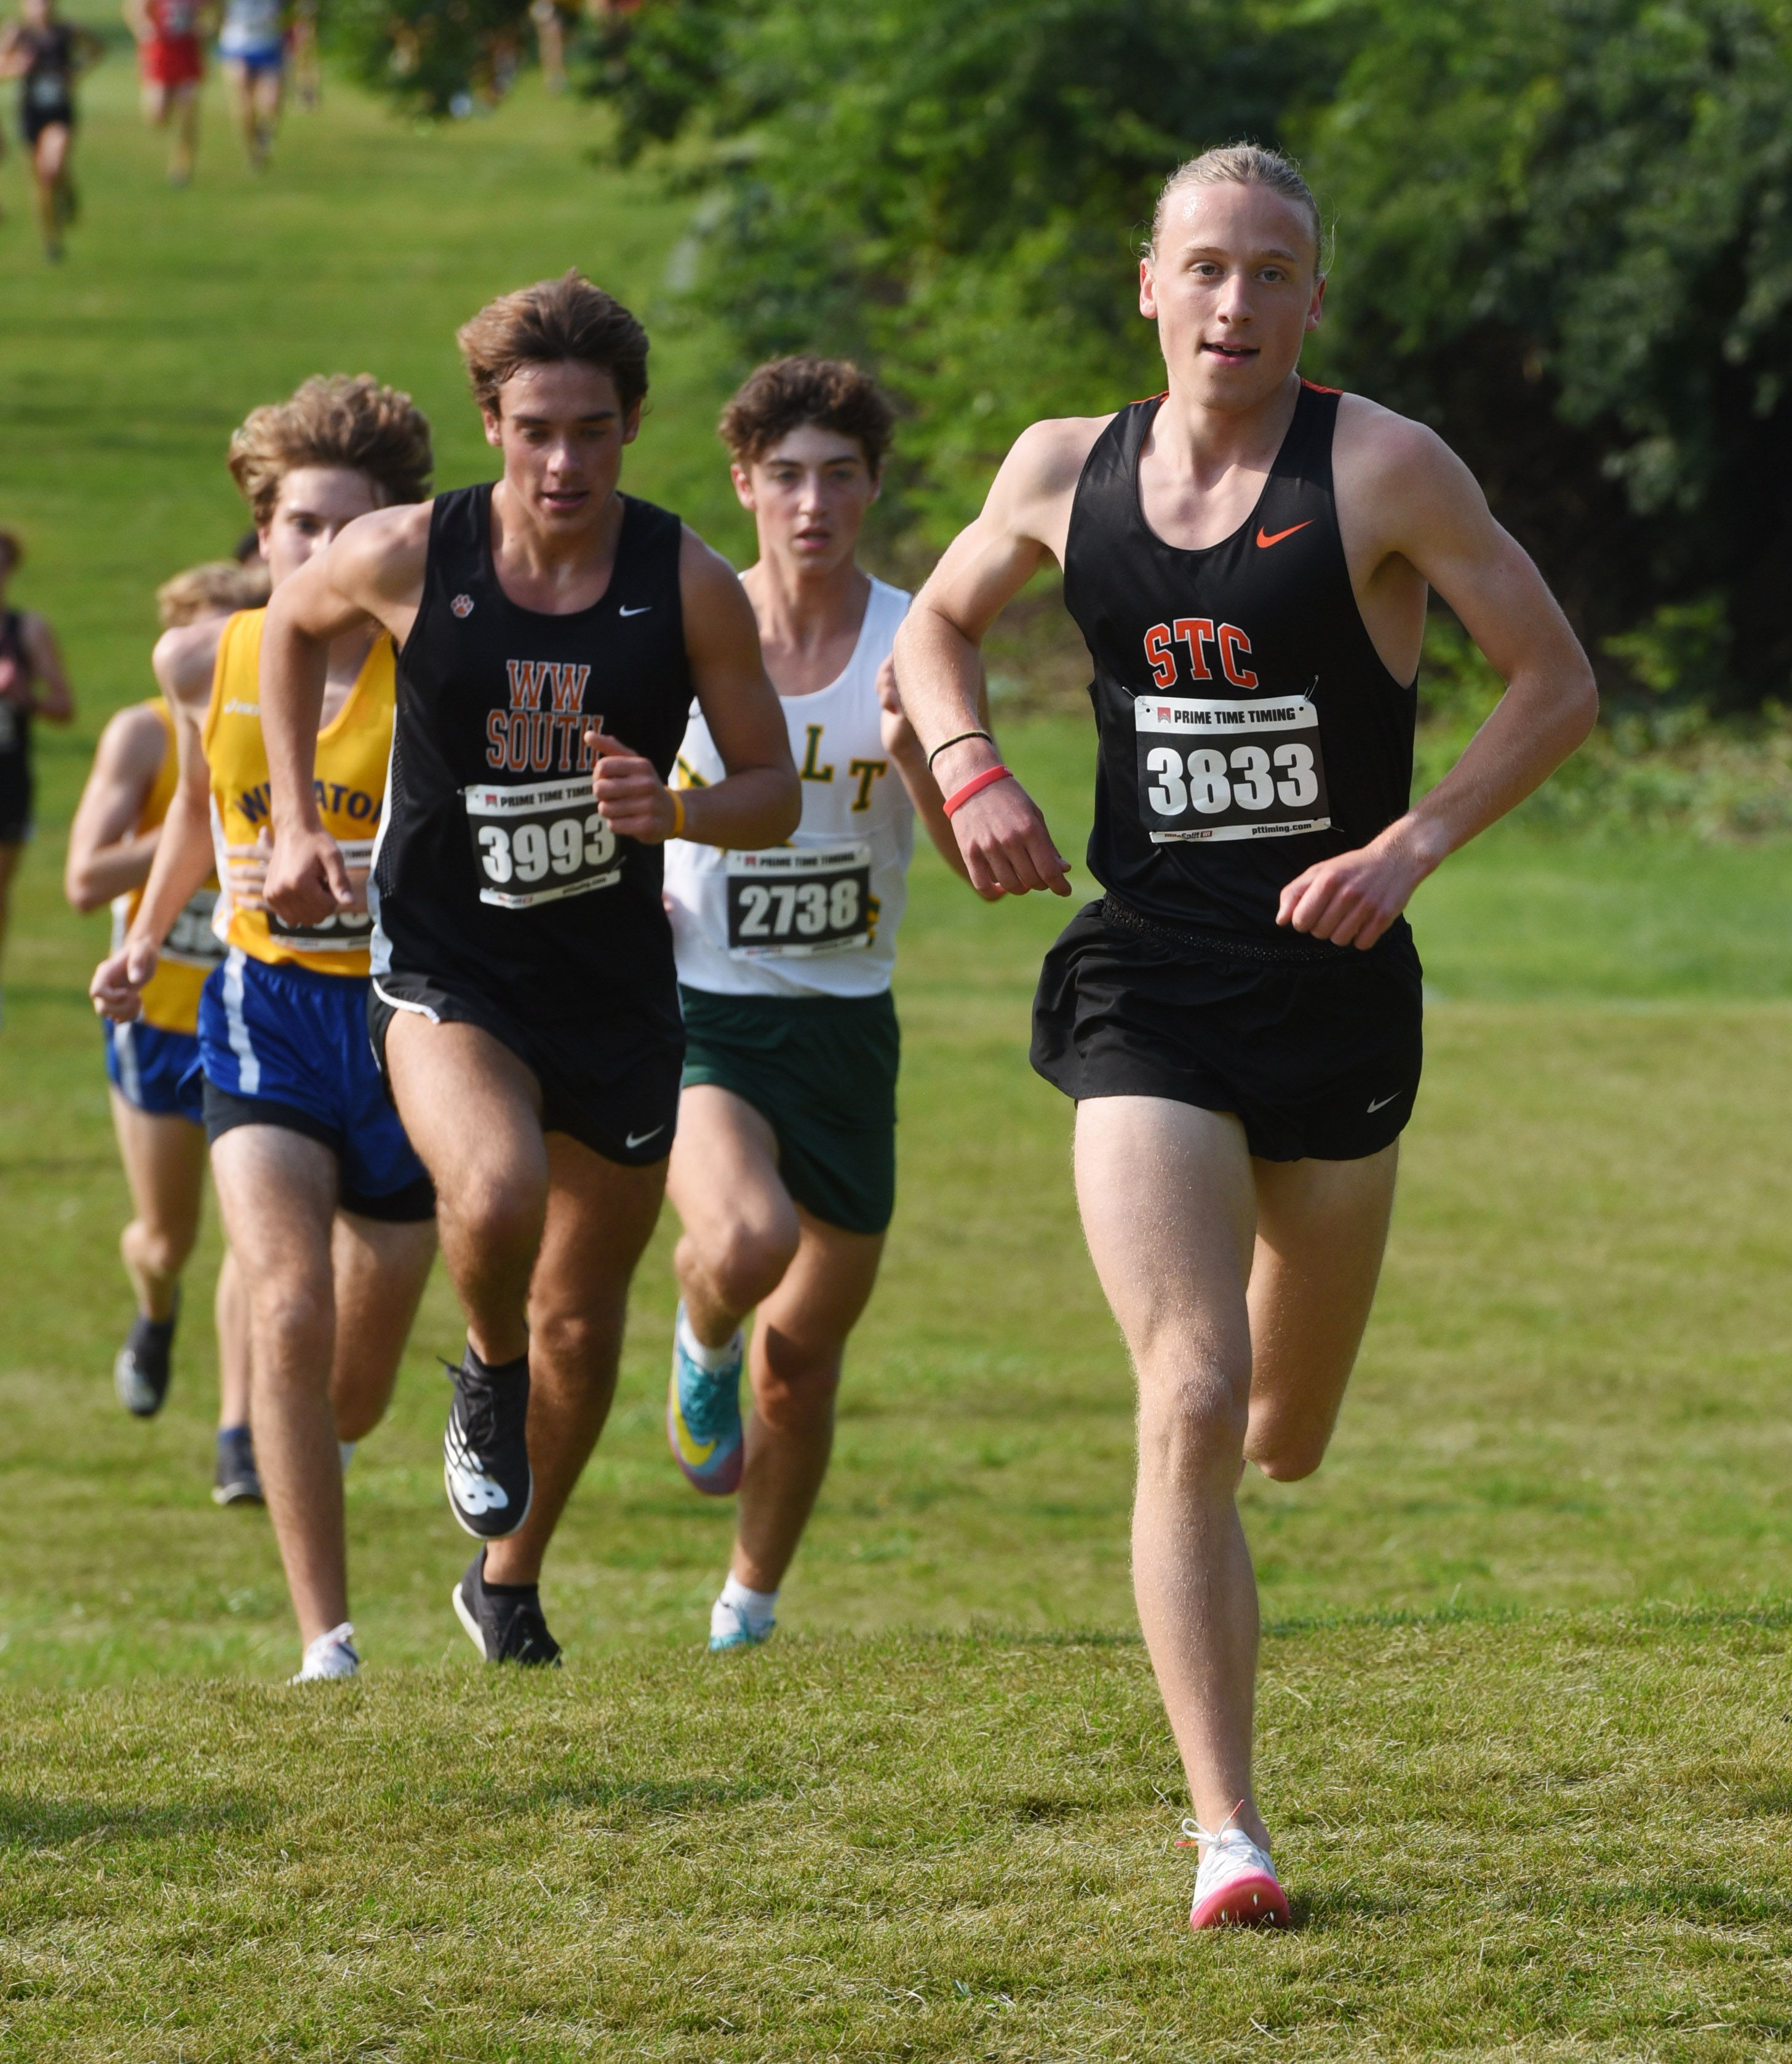 Joe Lewnard/jlewnard@dailyherald.com Micah Wilson of St. Charles East is out in front as he runs toward a first-place finish during the Lake Park cross country invite in Roselle Saturday.